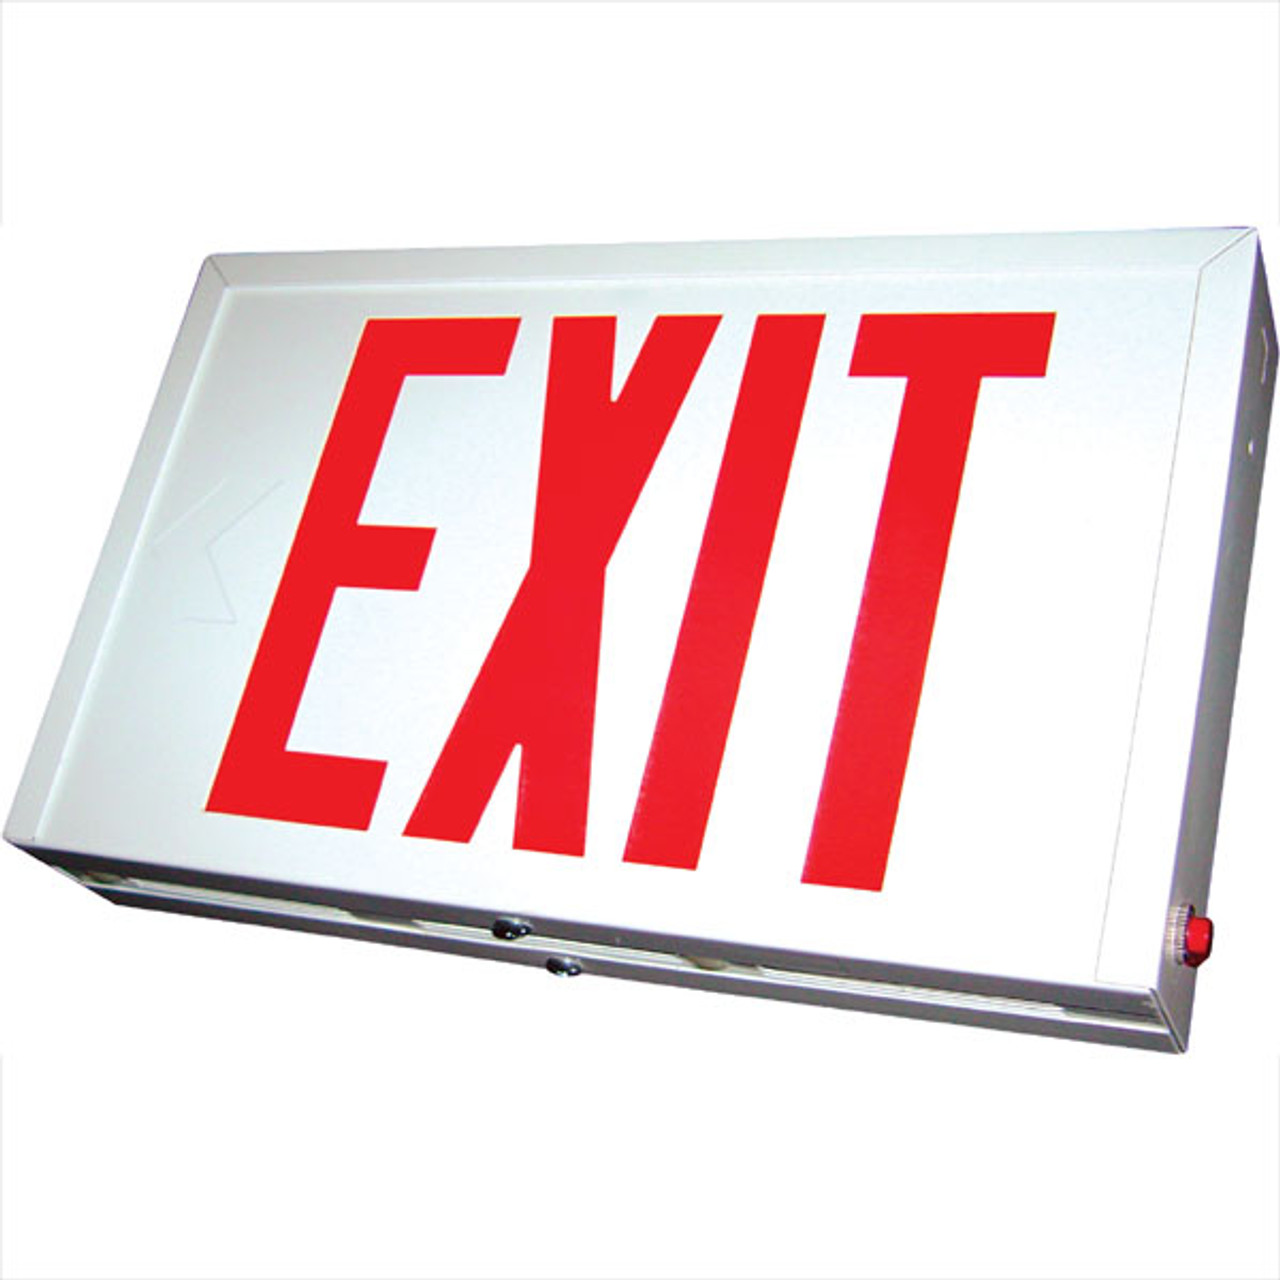 Chicago Steel Housing LED Exit Sign Battery Backup